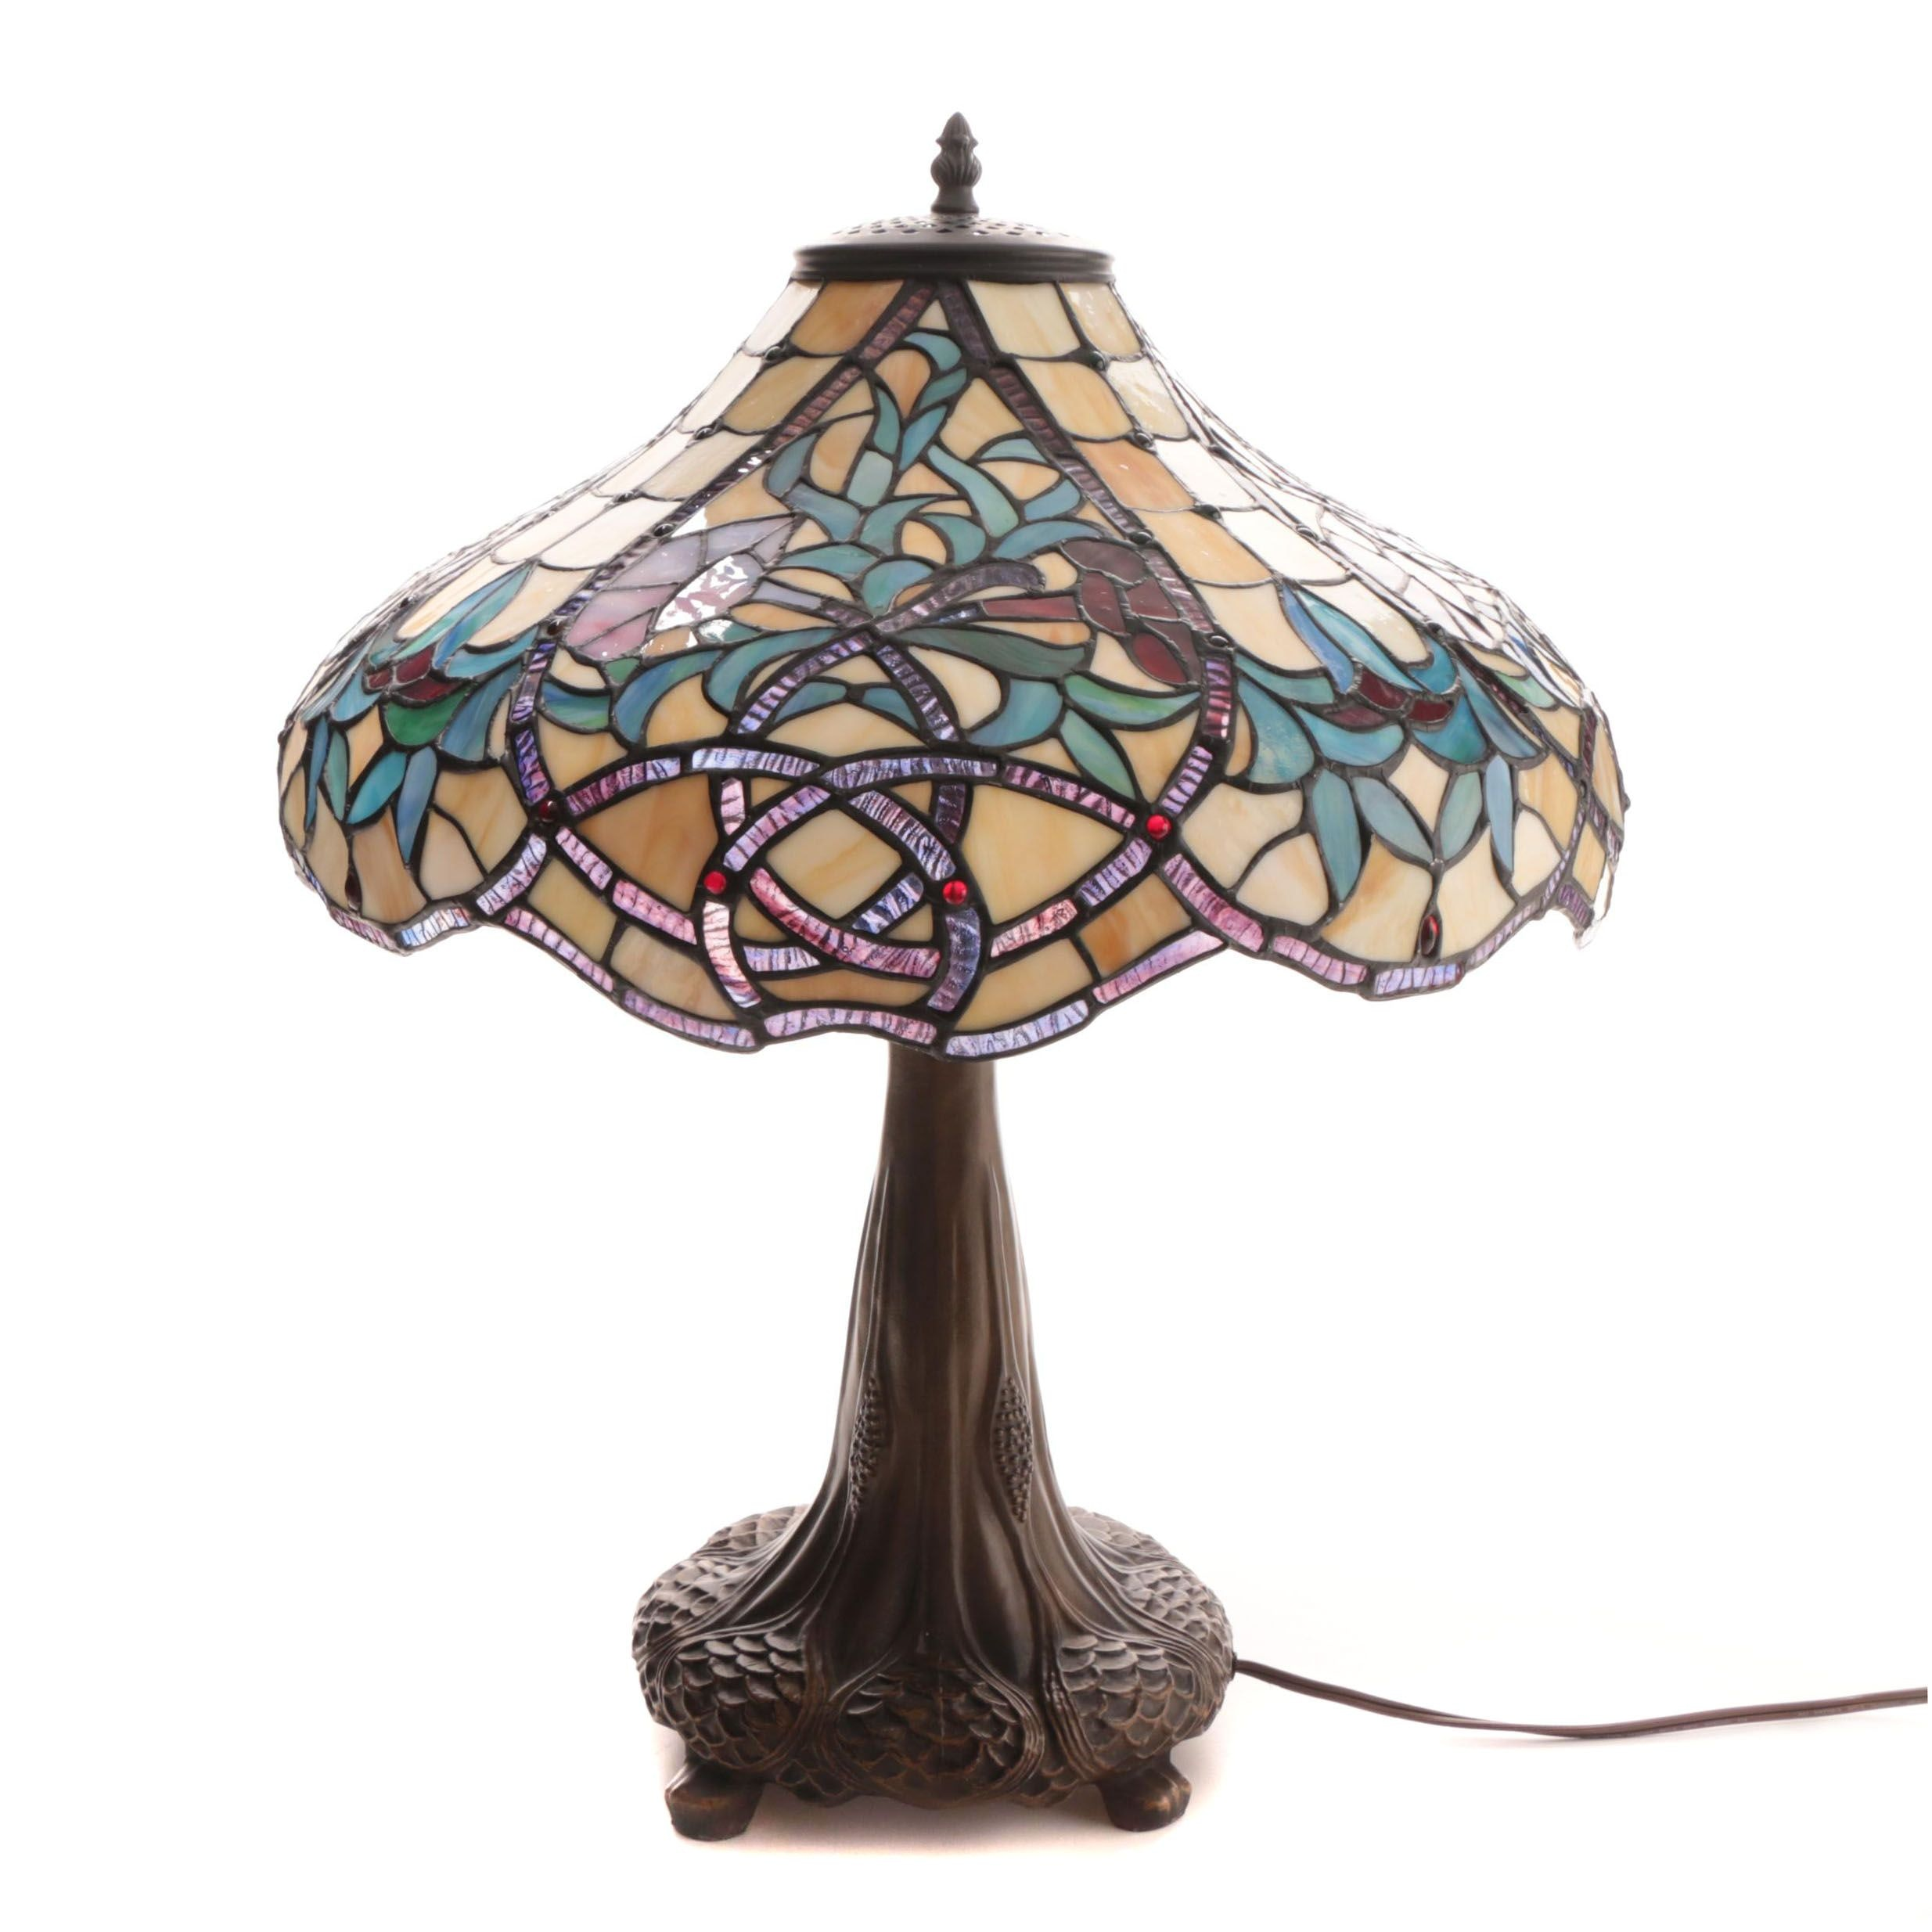 Cast Metal Table Lamp with Slag and Stained Glass Shade